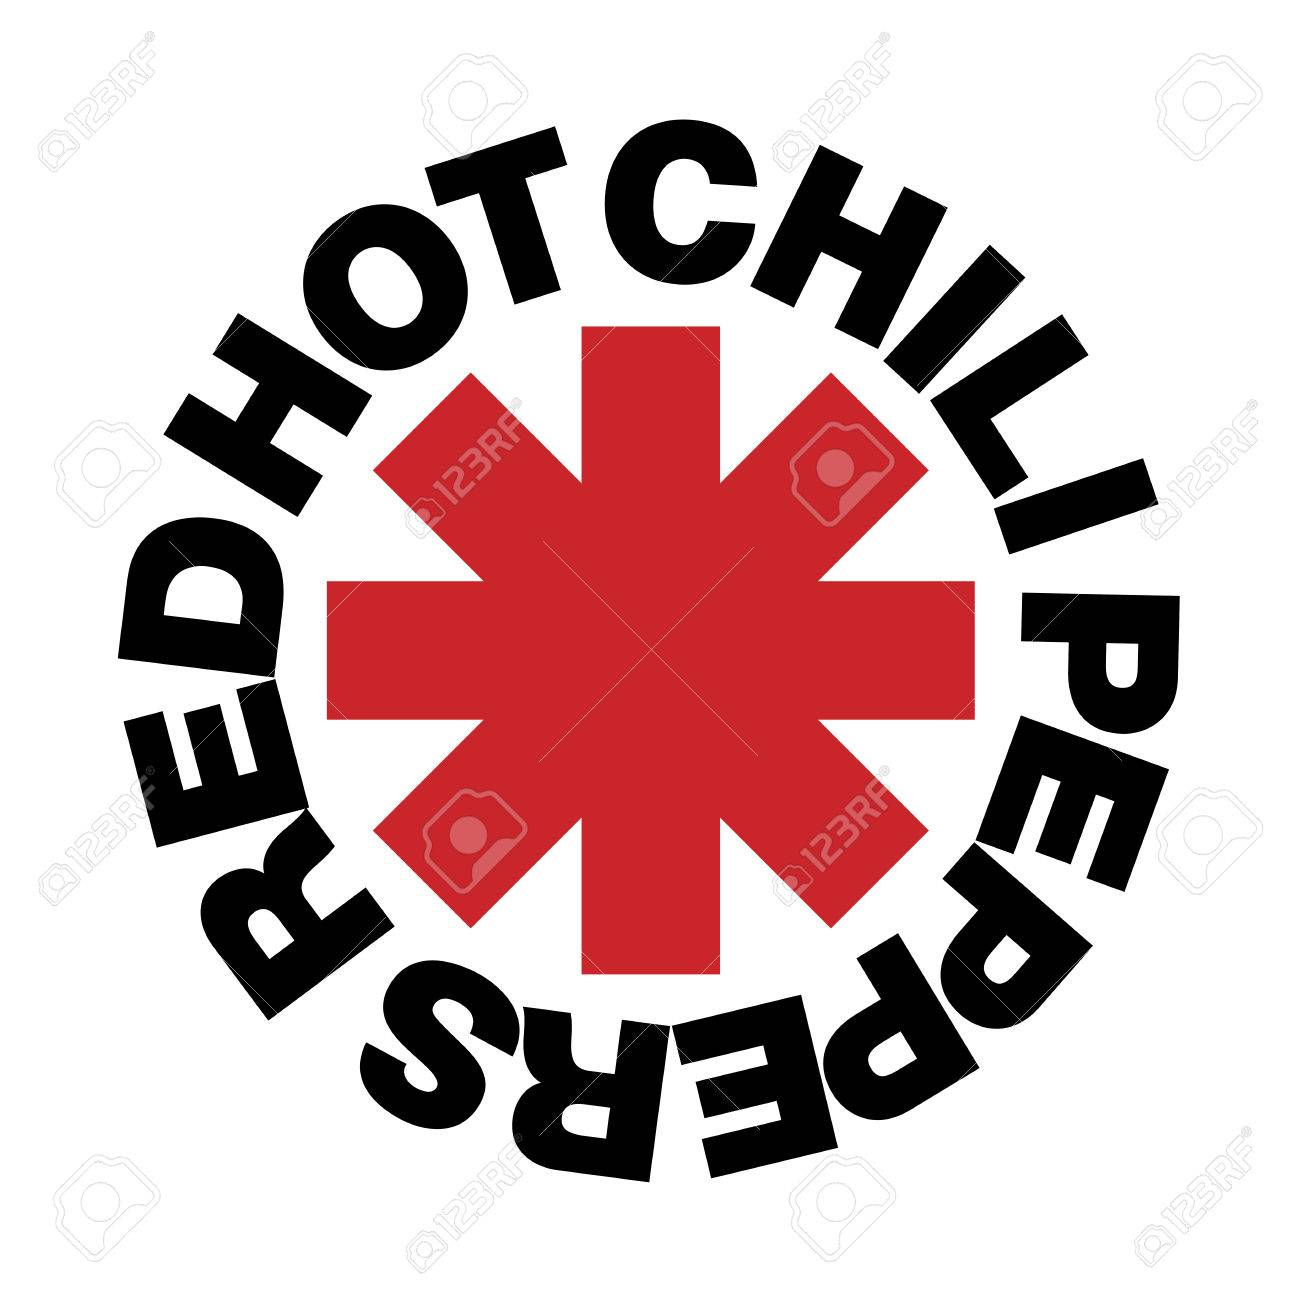 Russia october 11 2016 red hot chili peppers logo stock photo russia october 11 2016 red hot chili peppers logo stock photo 63762722 biocorpaavc